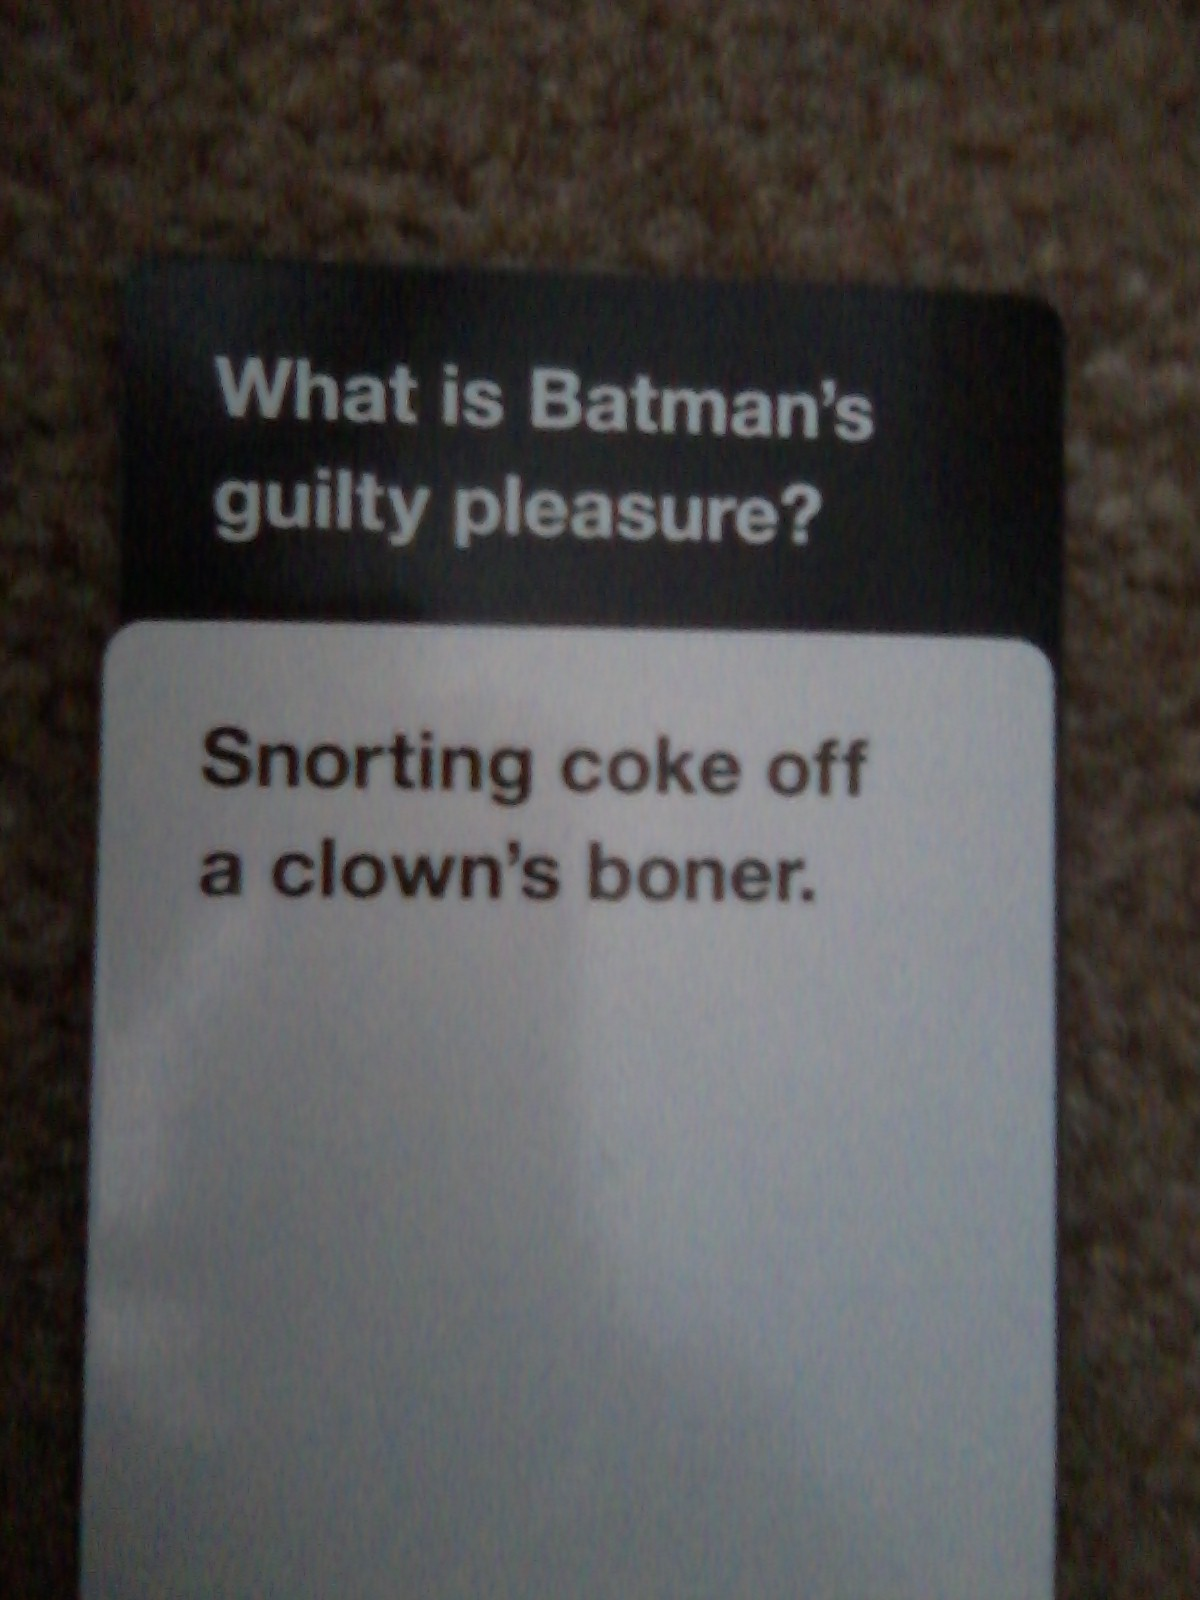 bdd image 678806] cards against humanity know your meme